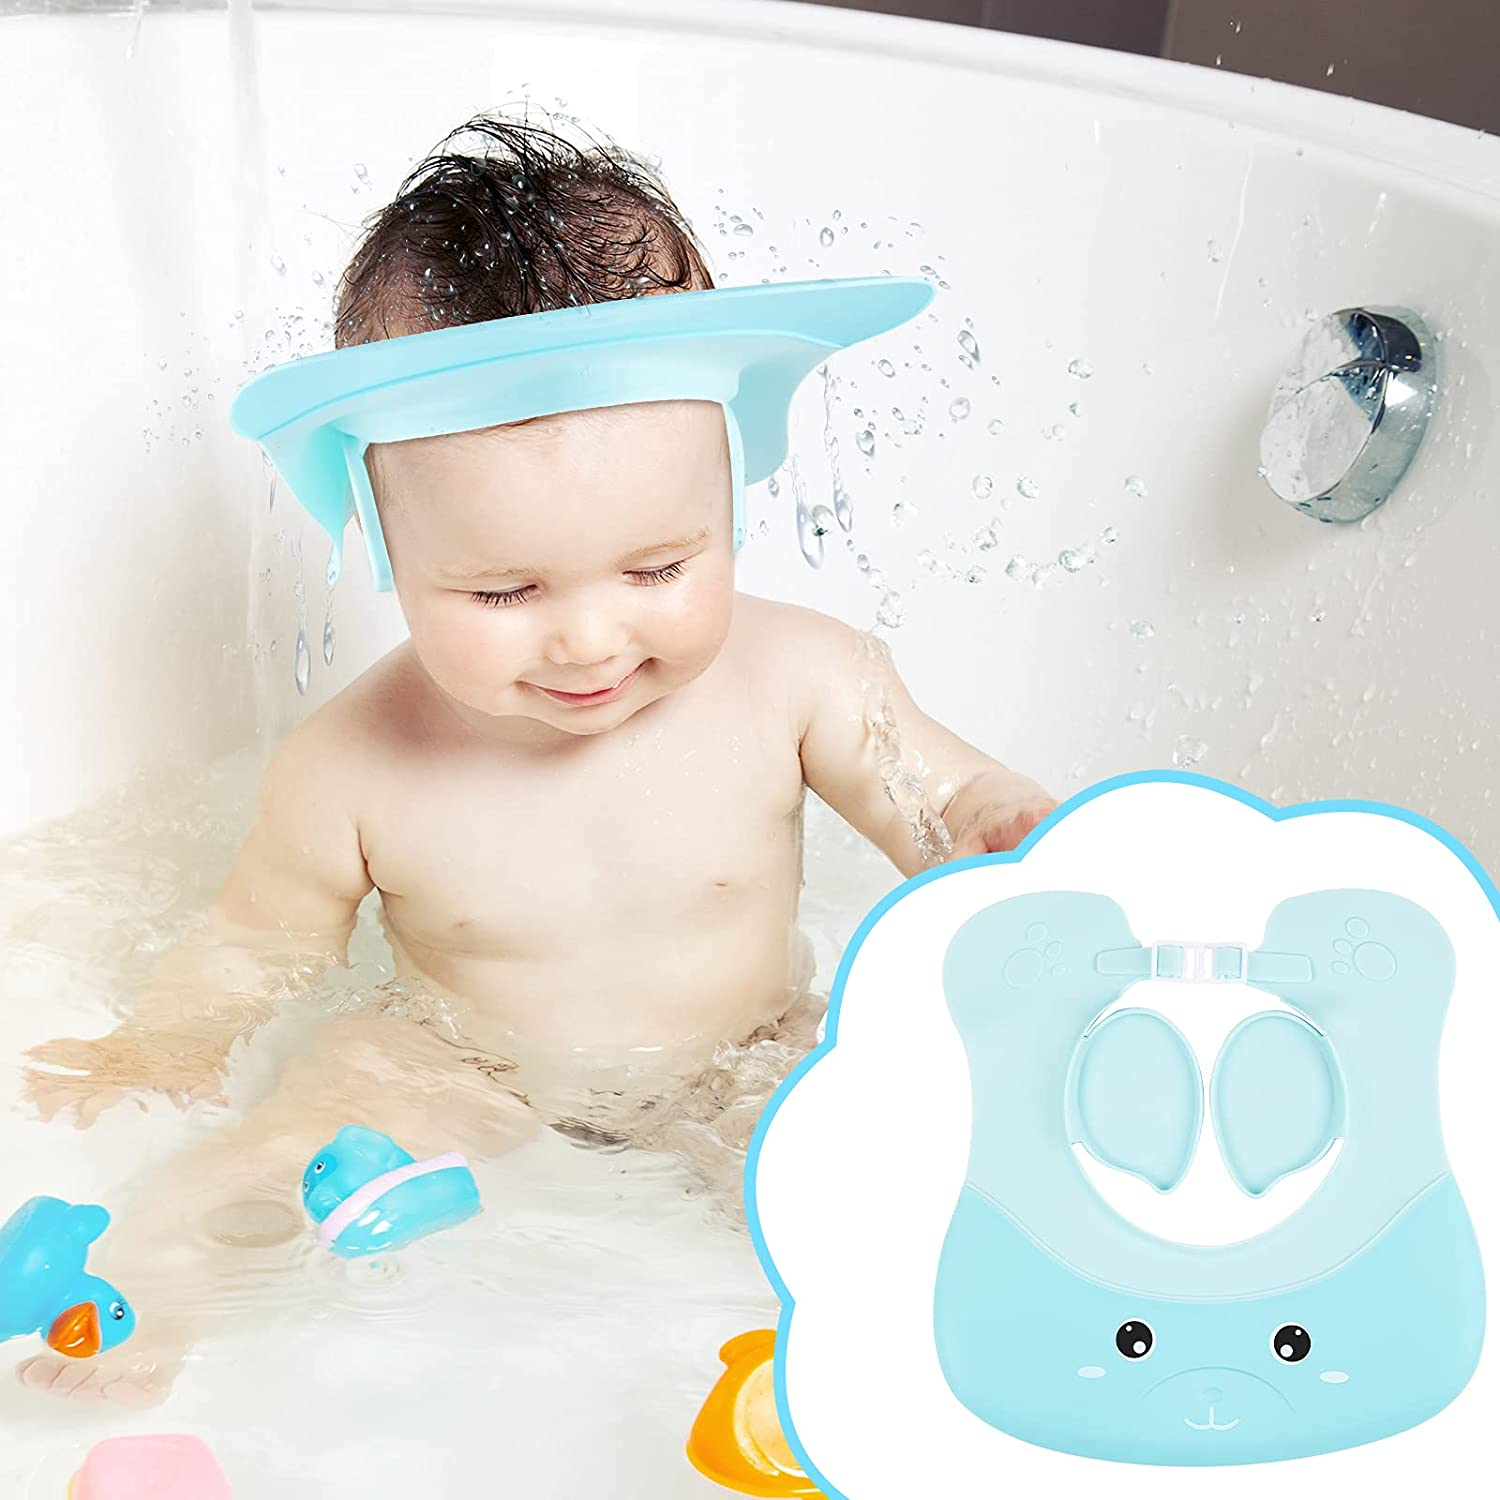 Baby Shower Cap Baby Bath Hat Children Shampoo Shower Cap Baby Bath Visor Adjustable Baby Shower Hat Blue Dolphin Shampoo Bathing Hat with Ear Protection for Prevent The Water Shampoo into Eyes Ears